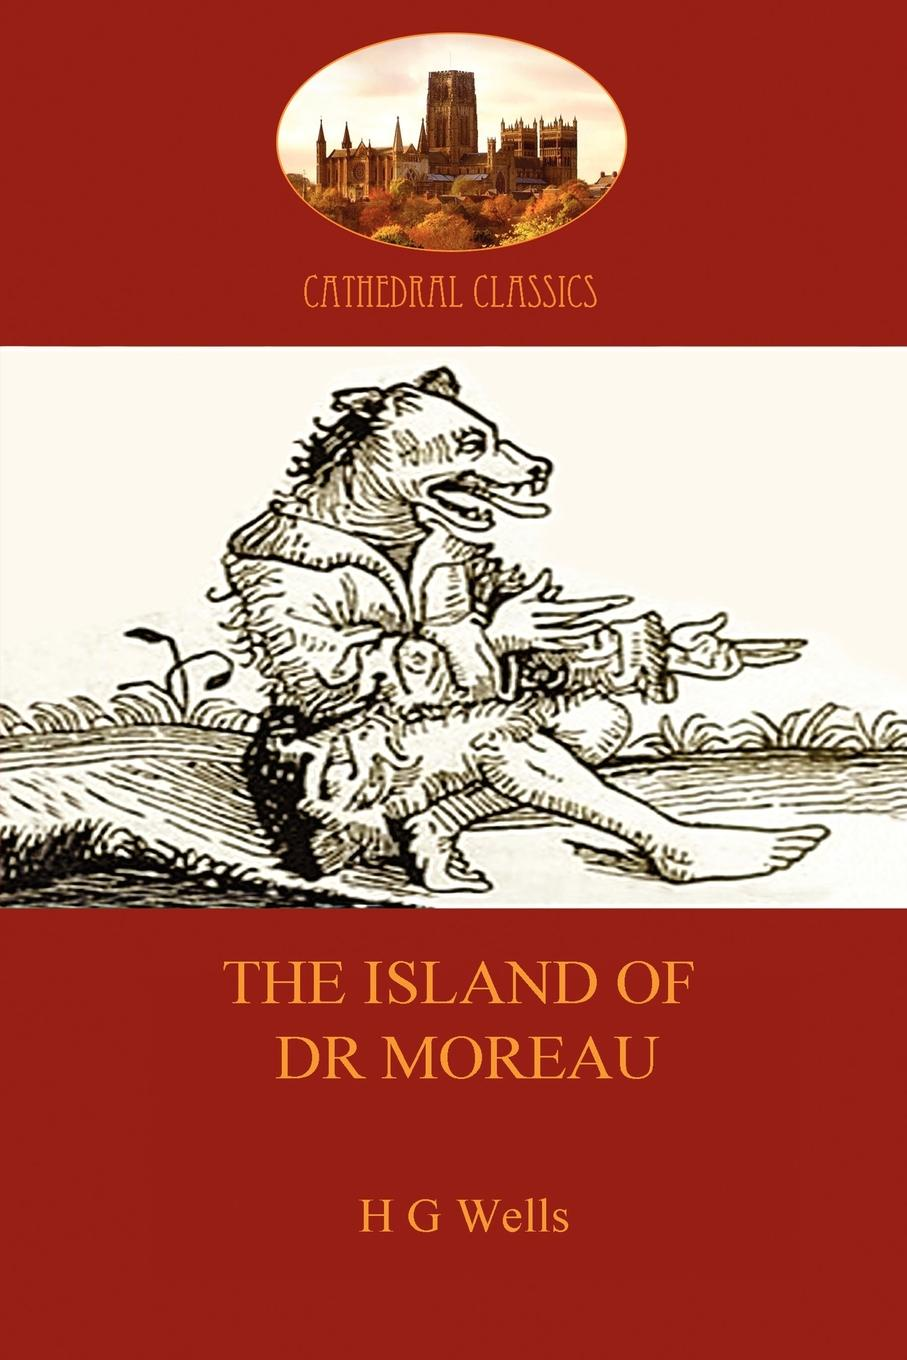 H. G. Wells The Island of Dr Moreau. a cautionary tale of souless science (Aziloth Books) h g wells the island of doctor moreau a possibility